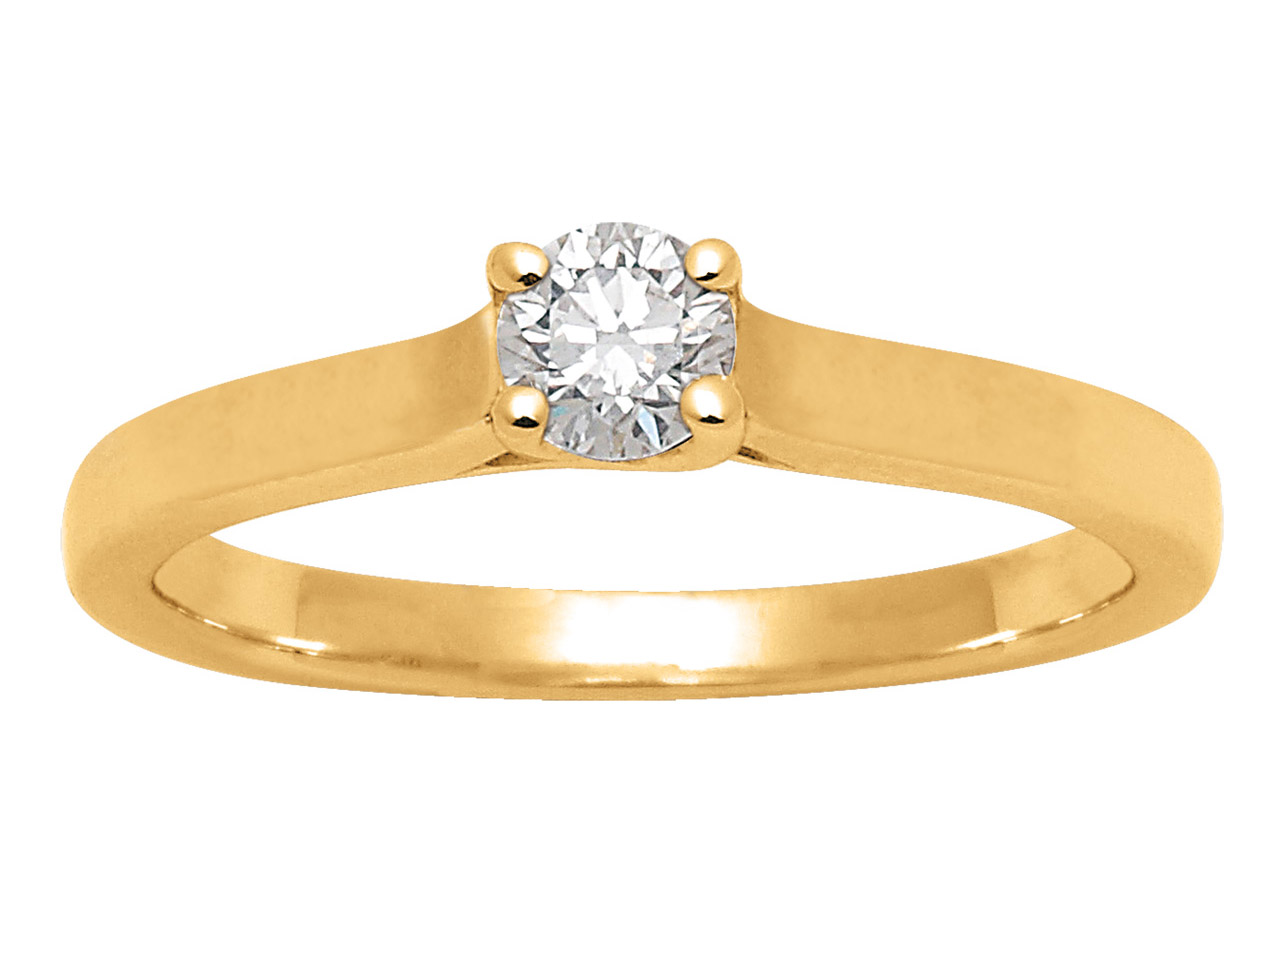 Solitaire diamants 0,25ct, Or jaune 18k, doigt 52